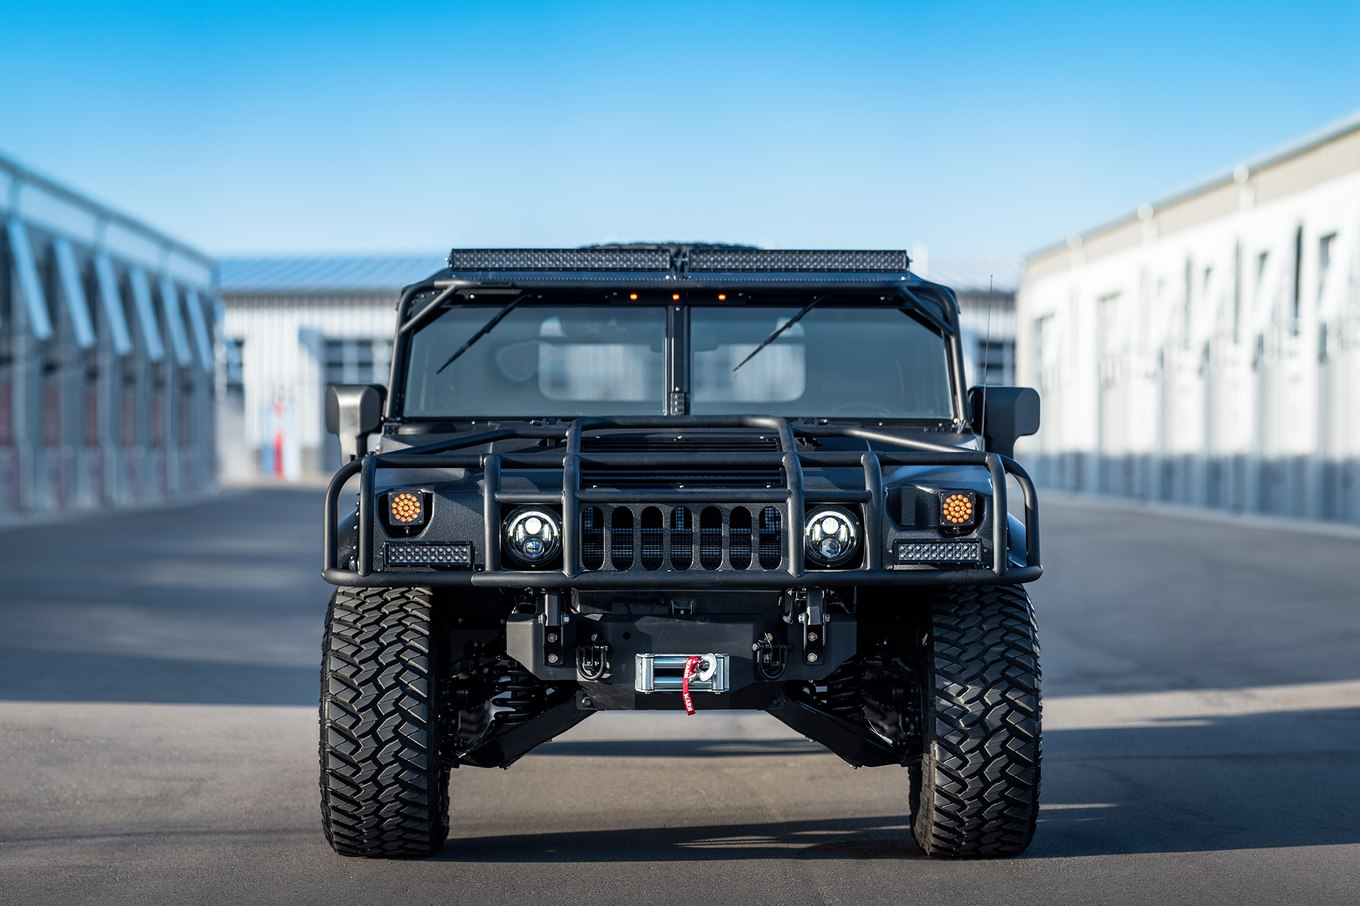 Hummer Used Engines For Sale